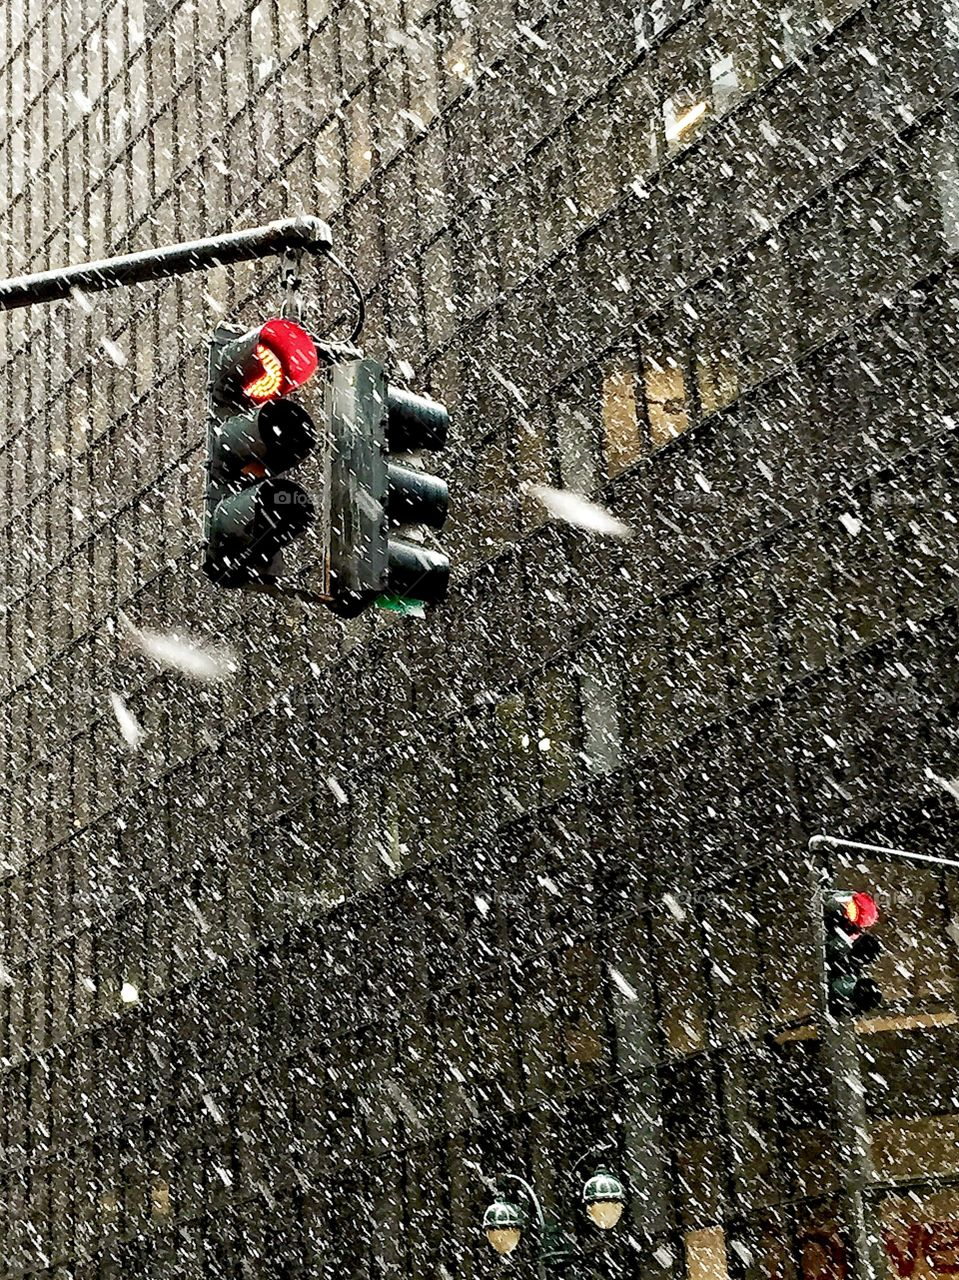 Spring Snow Fall in New York. Spring Snow Fall in New York